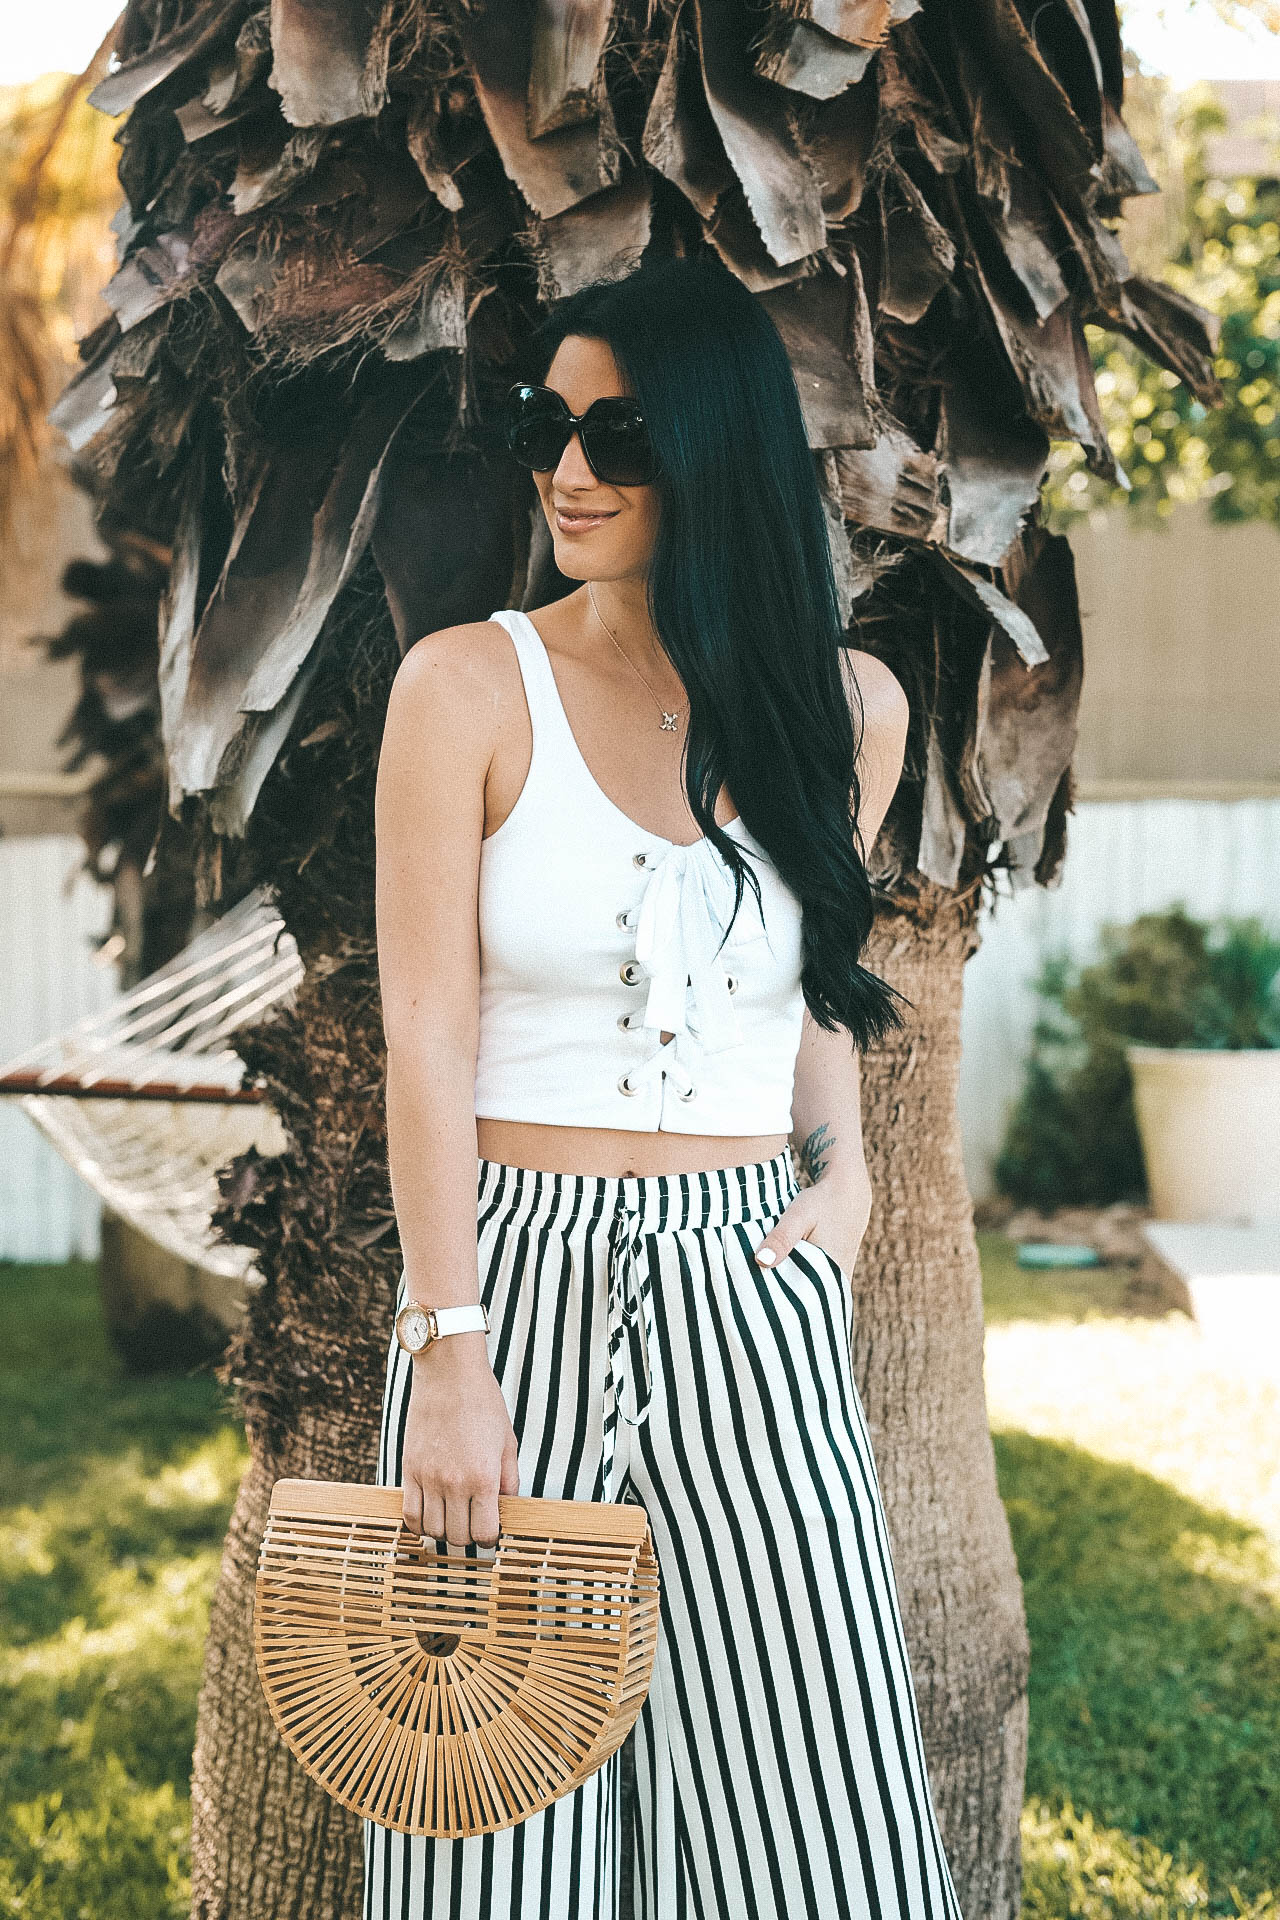 How to Style Striped Wide Leg Pants for Summer | summer pants | striped pants outfit | summer outfit ideas || Dressed to Kill #style #fashion #womensoutfits #stripedpants #summerstyle